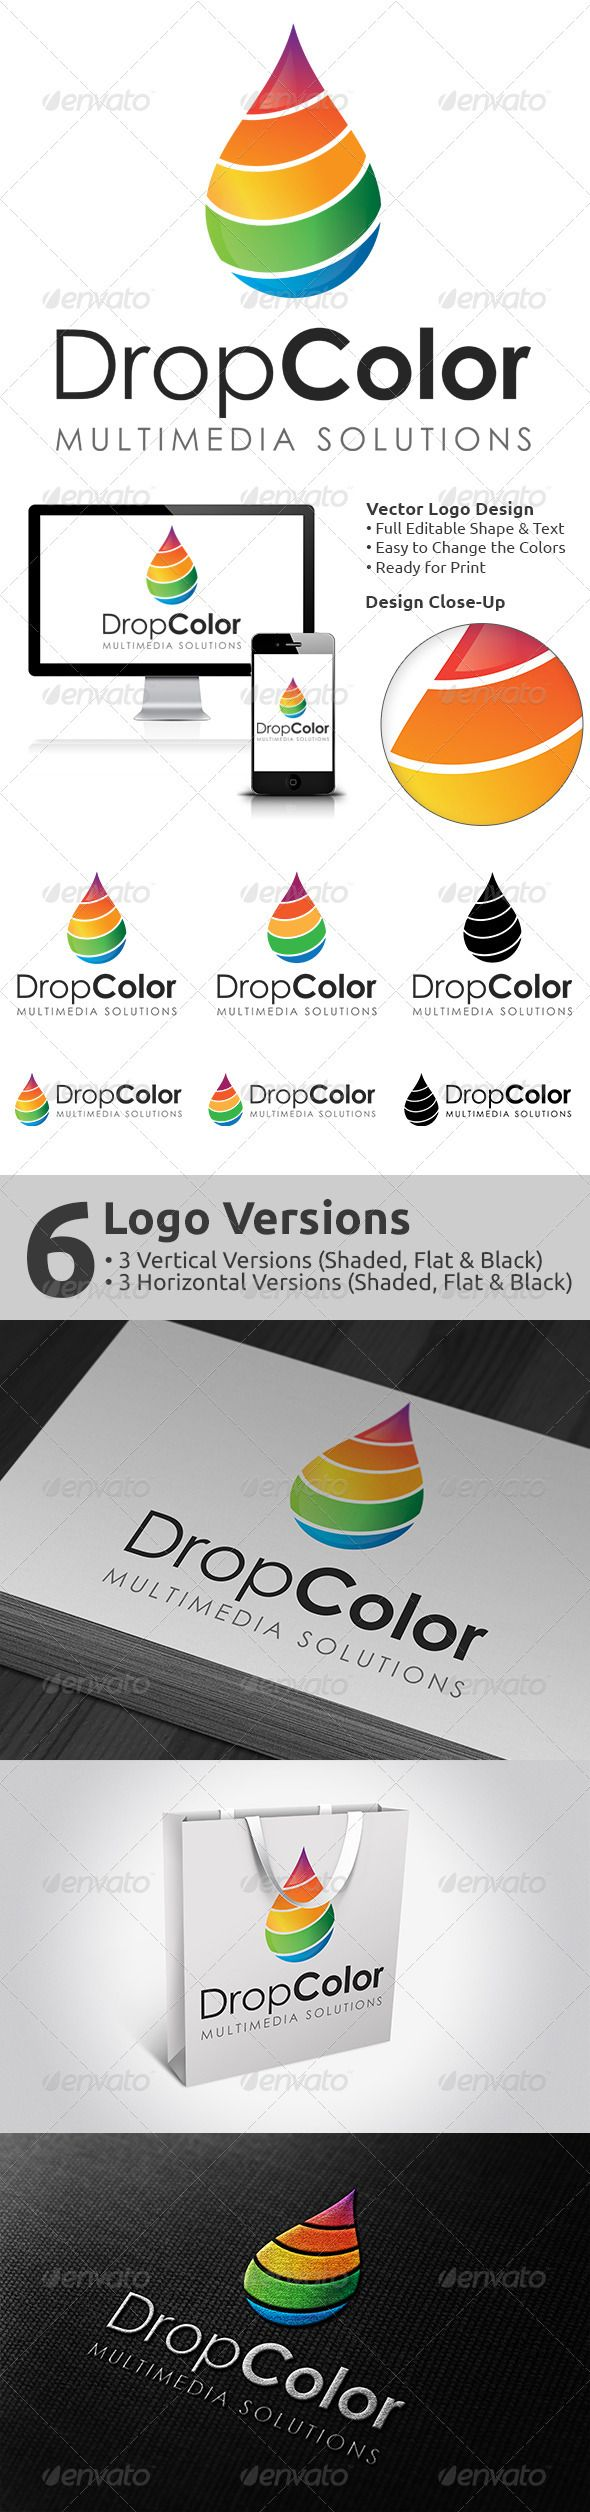 DropColor Logo Design by Arh DropColor Logo Design in vector format. Very easy to customize the text, colors and size. An excellent logo template suitable for